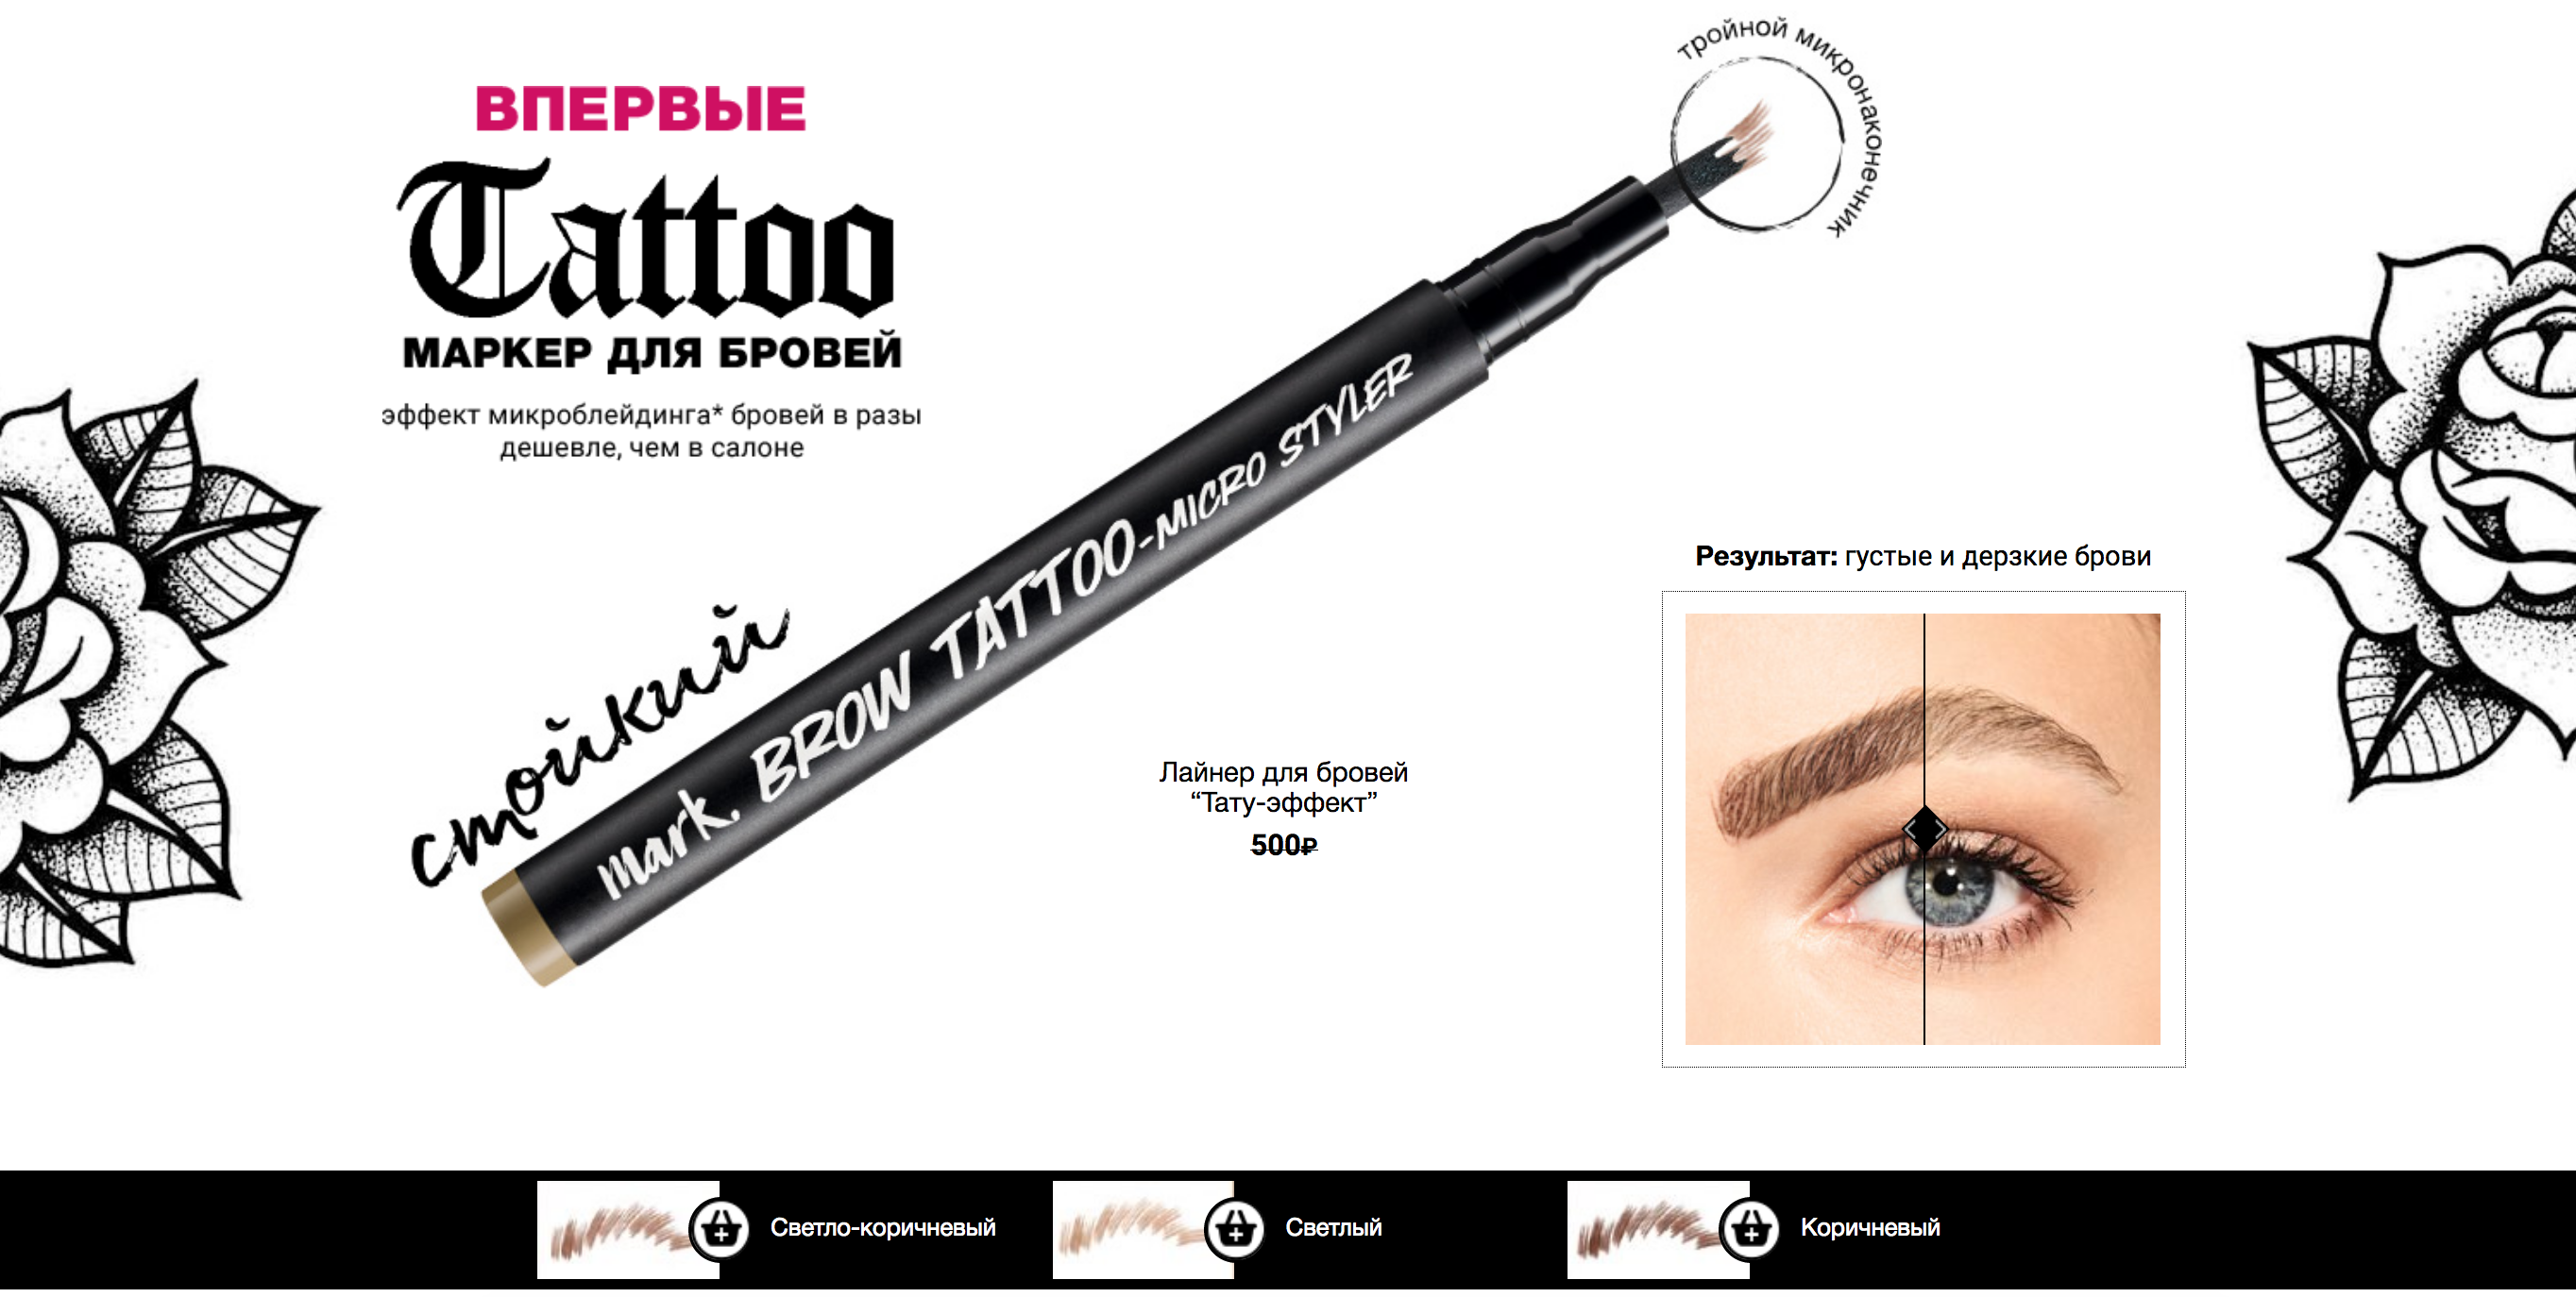 Avon MARK Tatoo для бровей